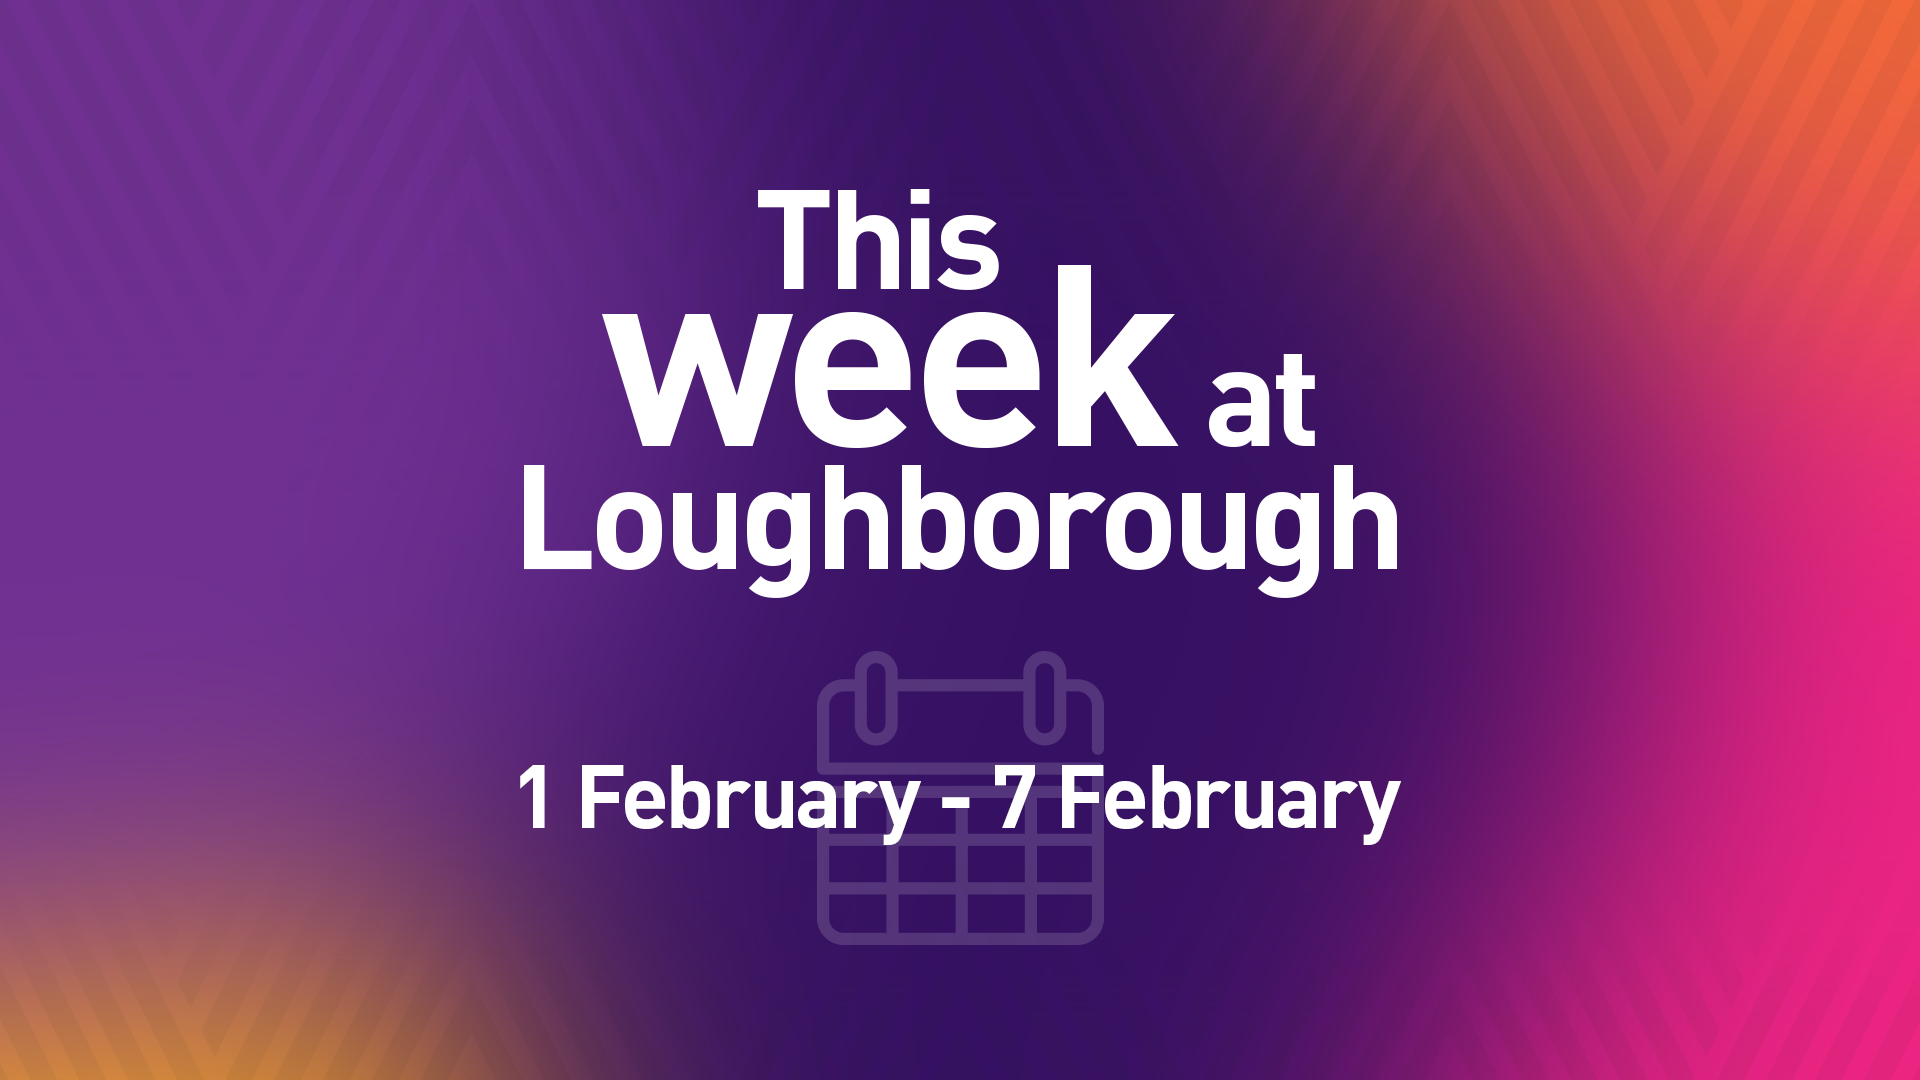 This Week at Loughborough | 01 February